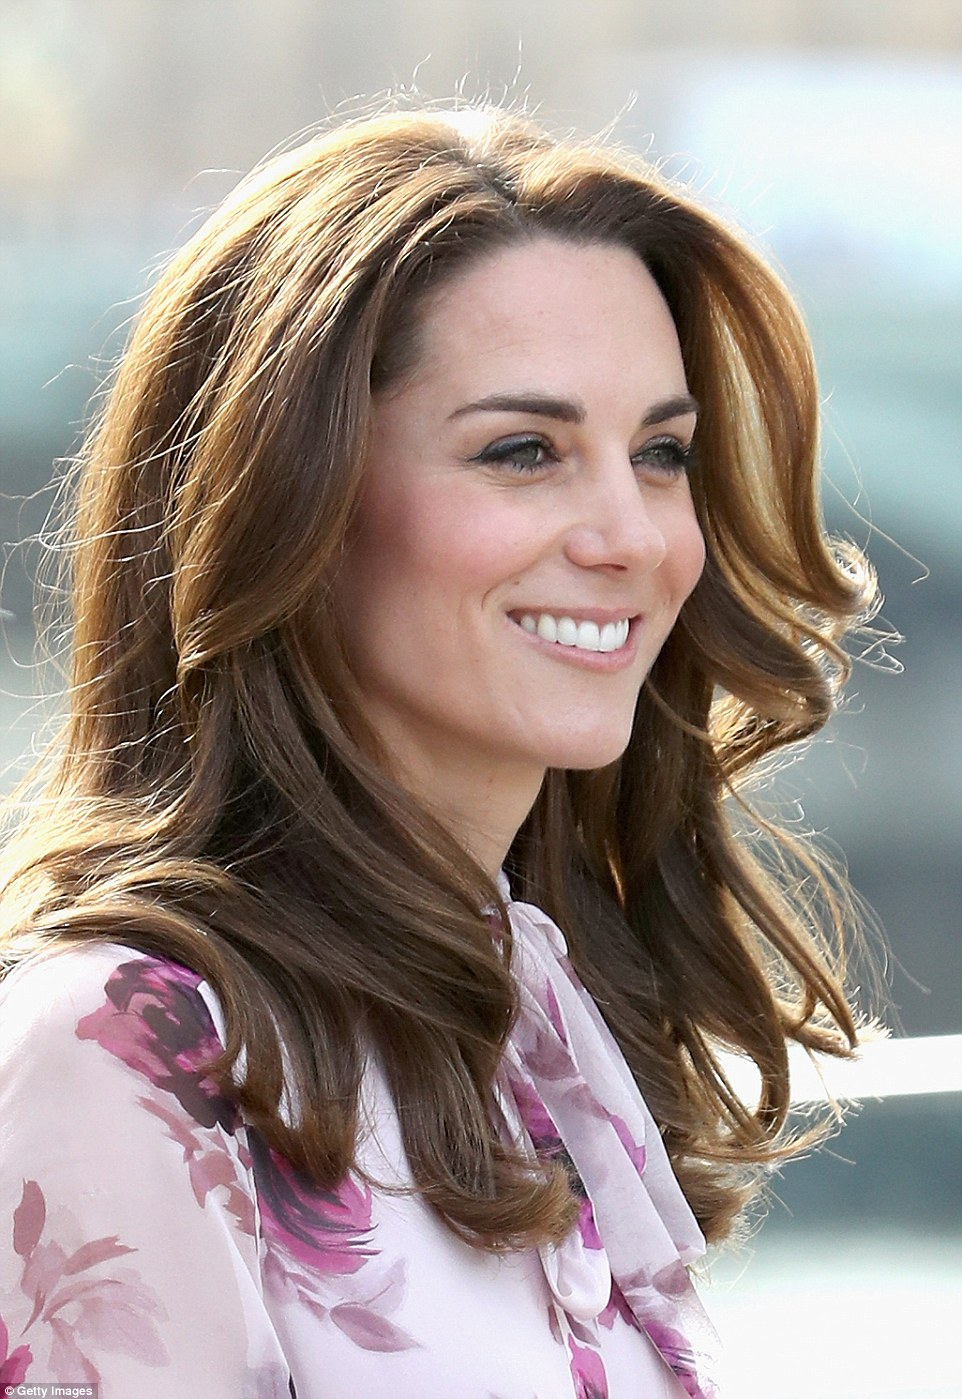 Kate flashes her pearly whites as she greets the crowd with a warm smile